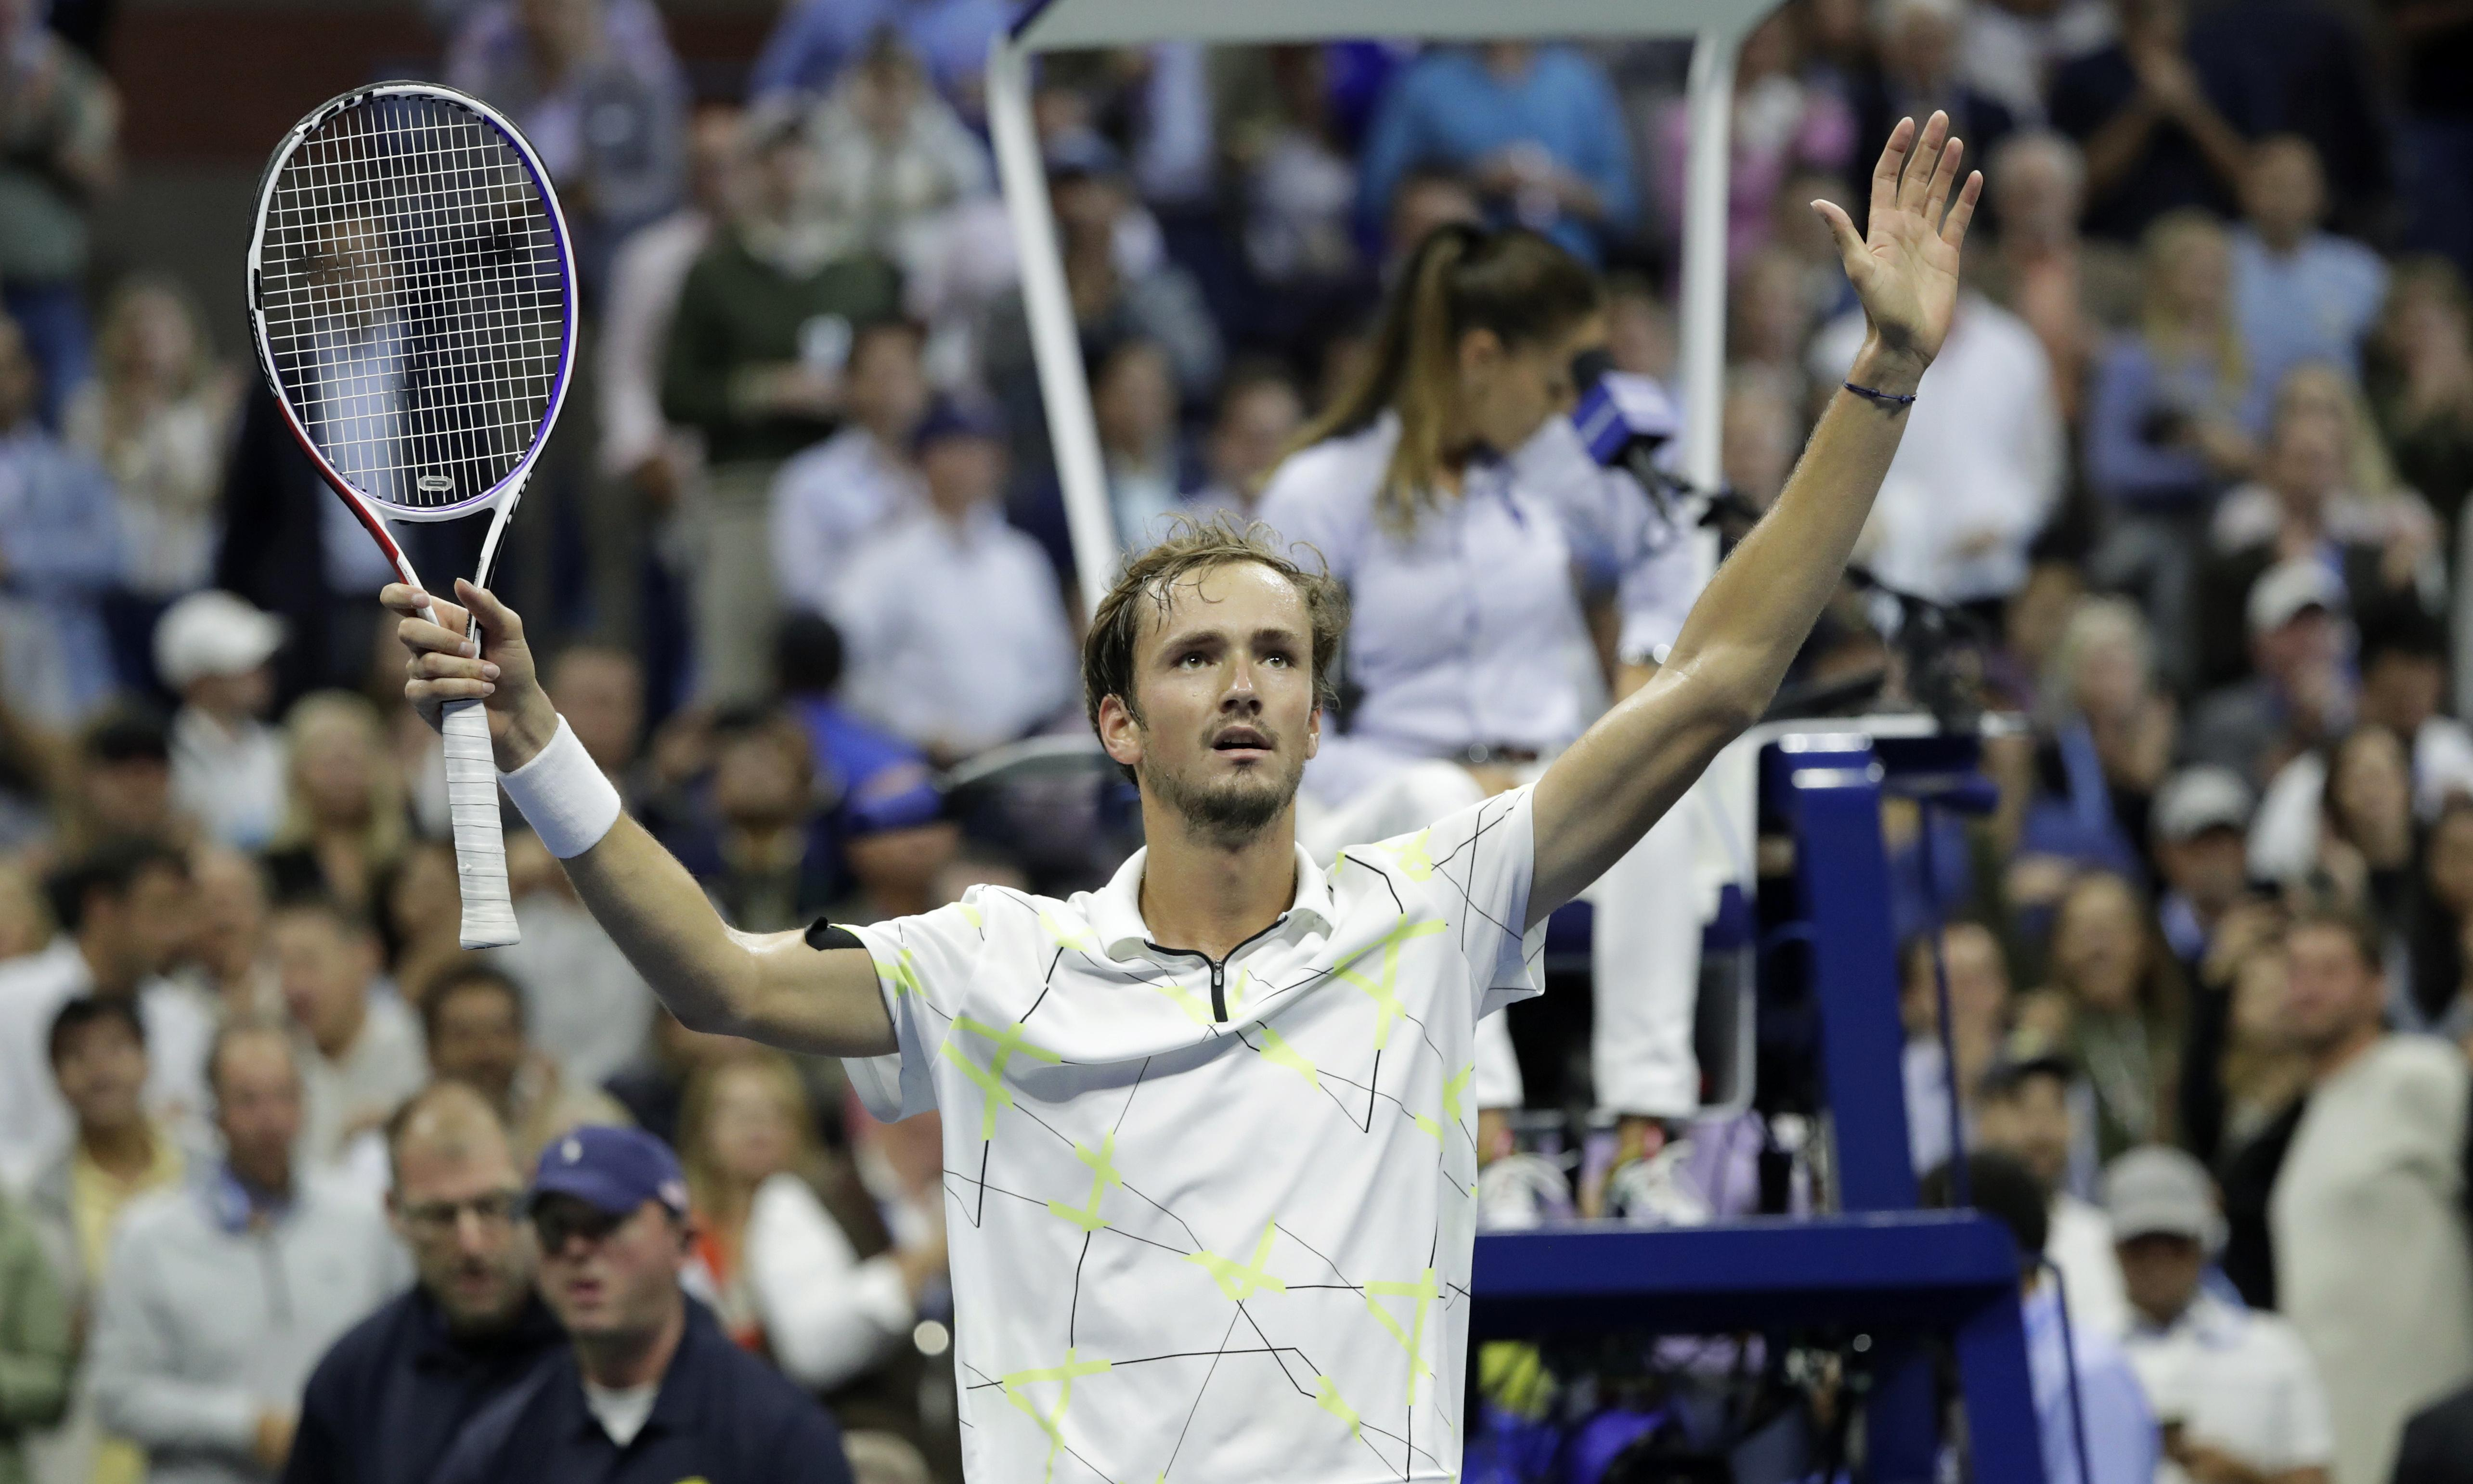 Medvedev swats aside Dimitrov to make US Open final as sublime run goes on